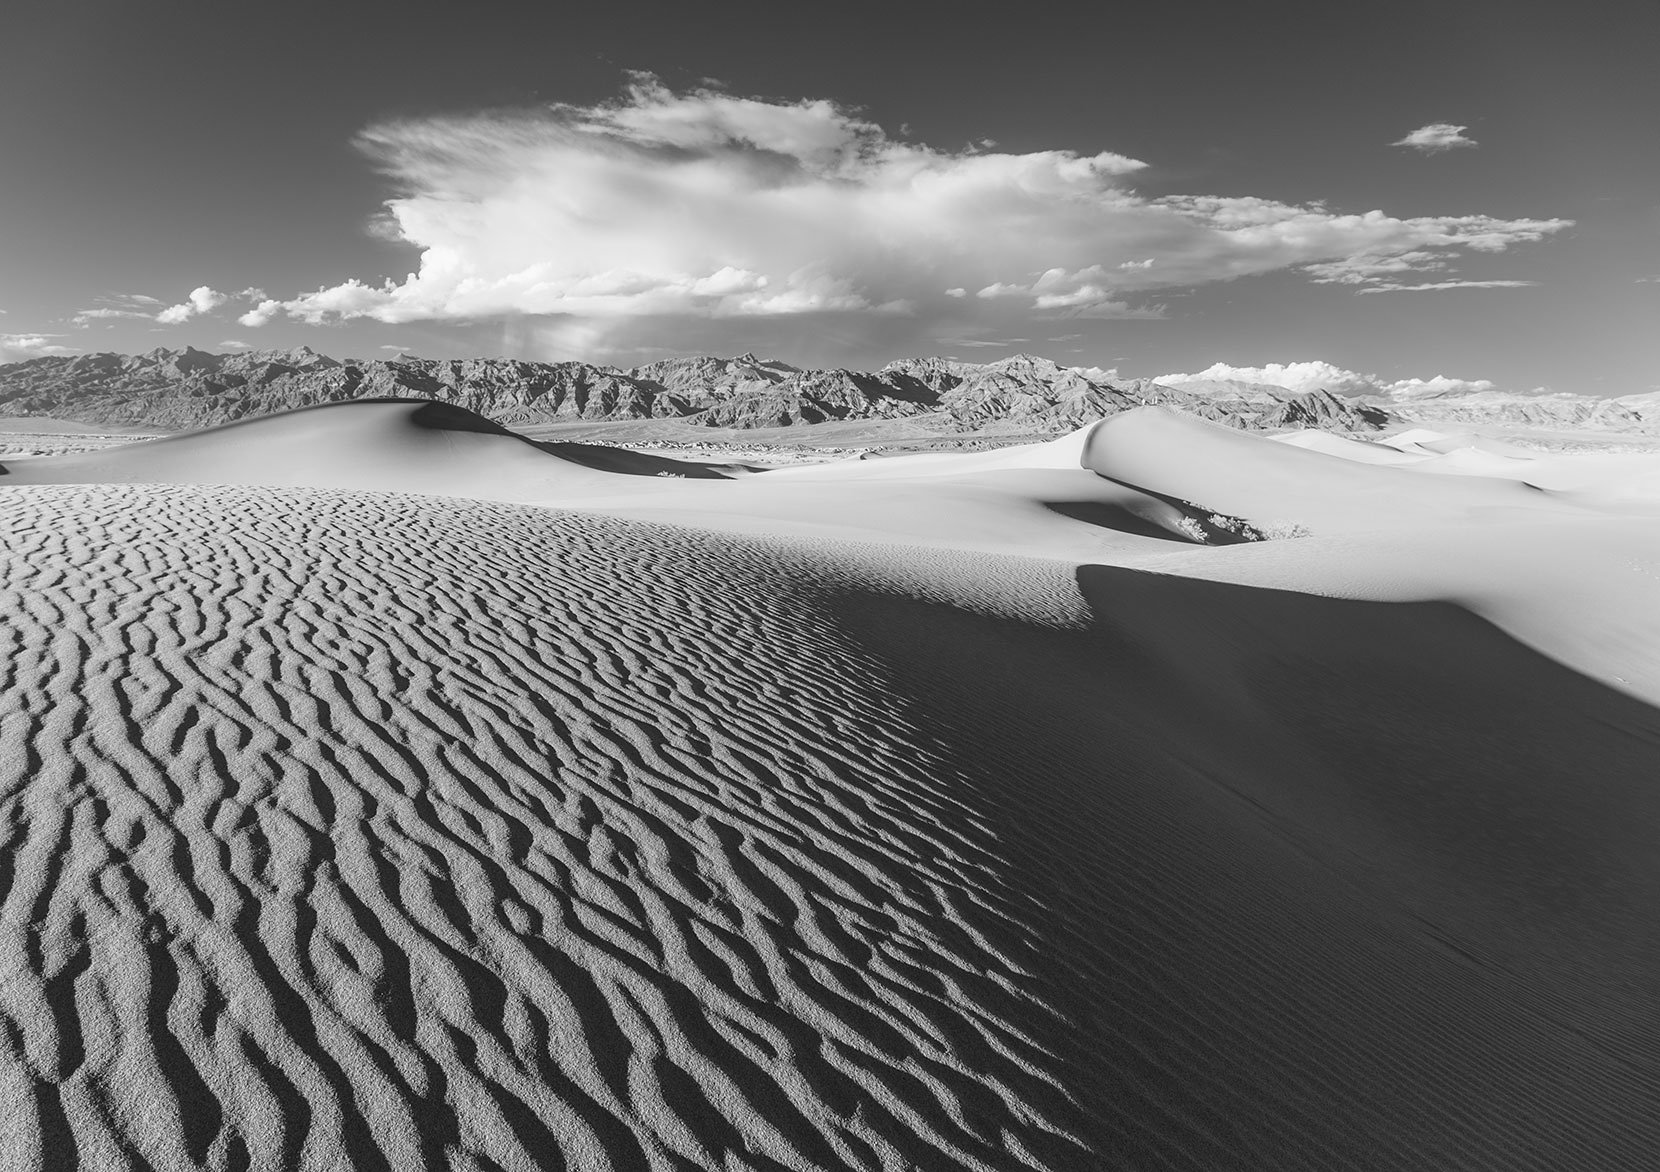 David Clapp Reviews Breakthrough Photography Filters Lee 100x150 Graduated Nd 06 Soft I Took The Pair Firstly To Death Valley Then Netherlands Over Easter Break A Mix Of Landscapes And Cityscapes Has Some